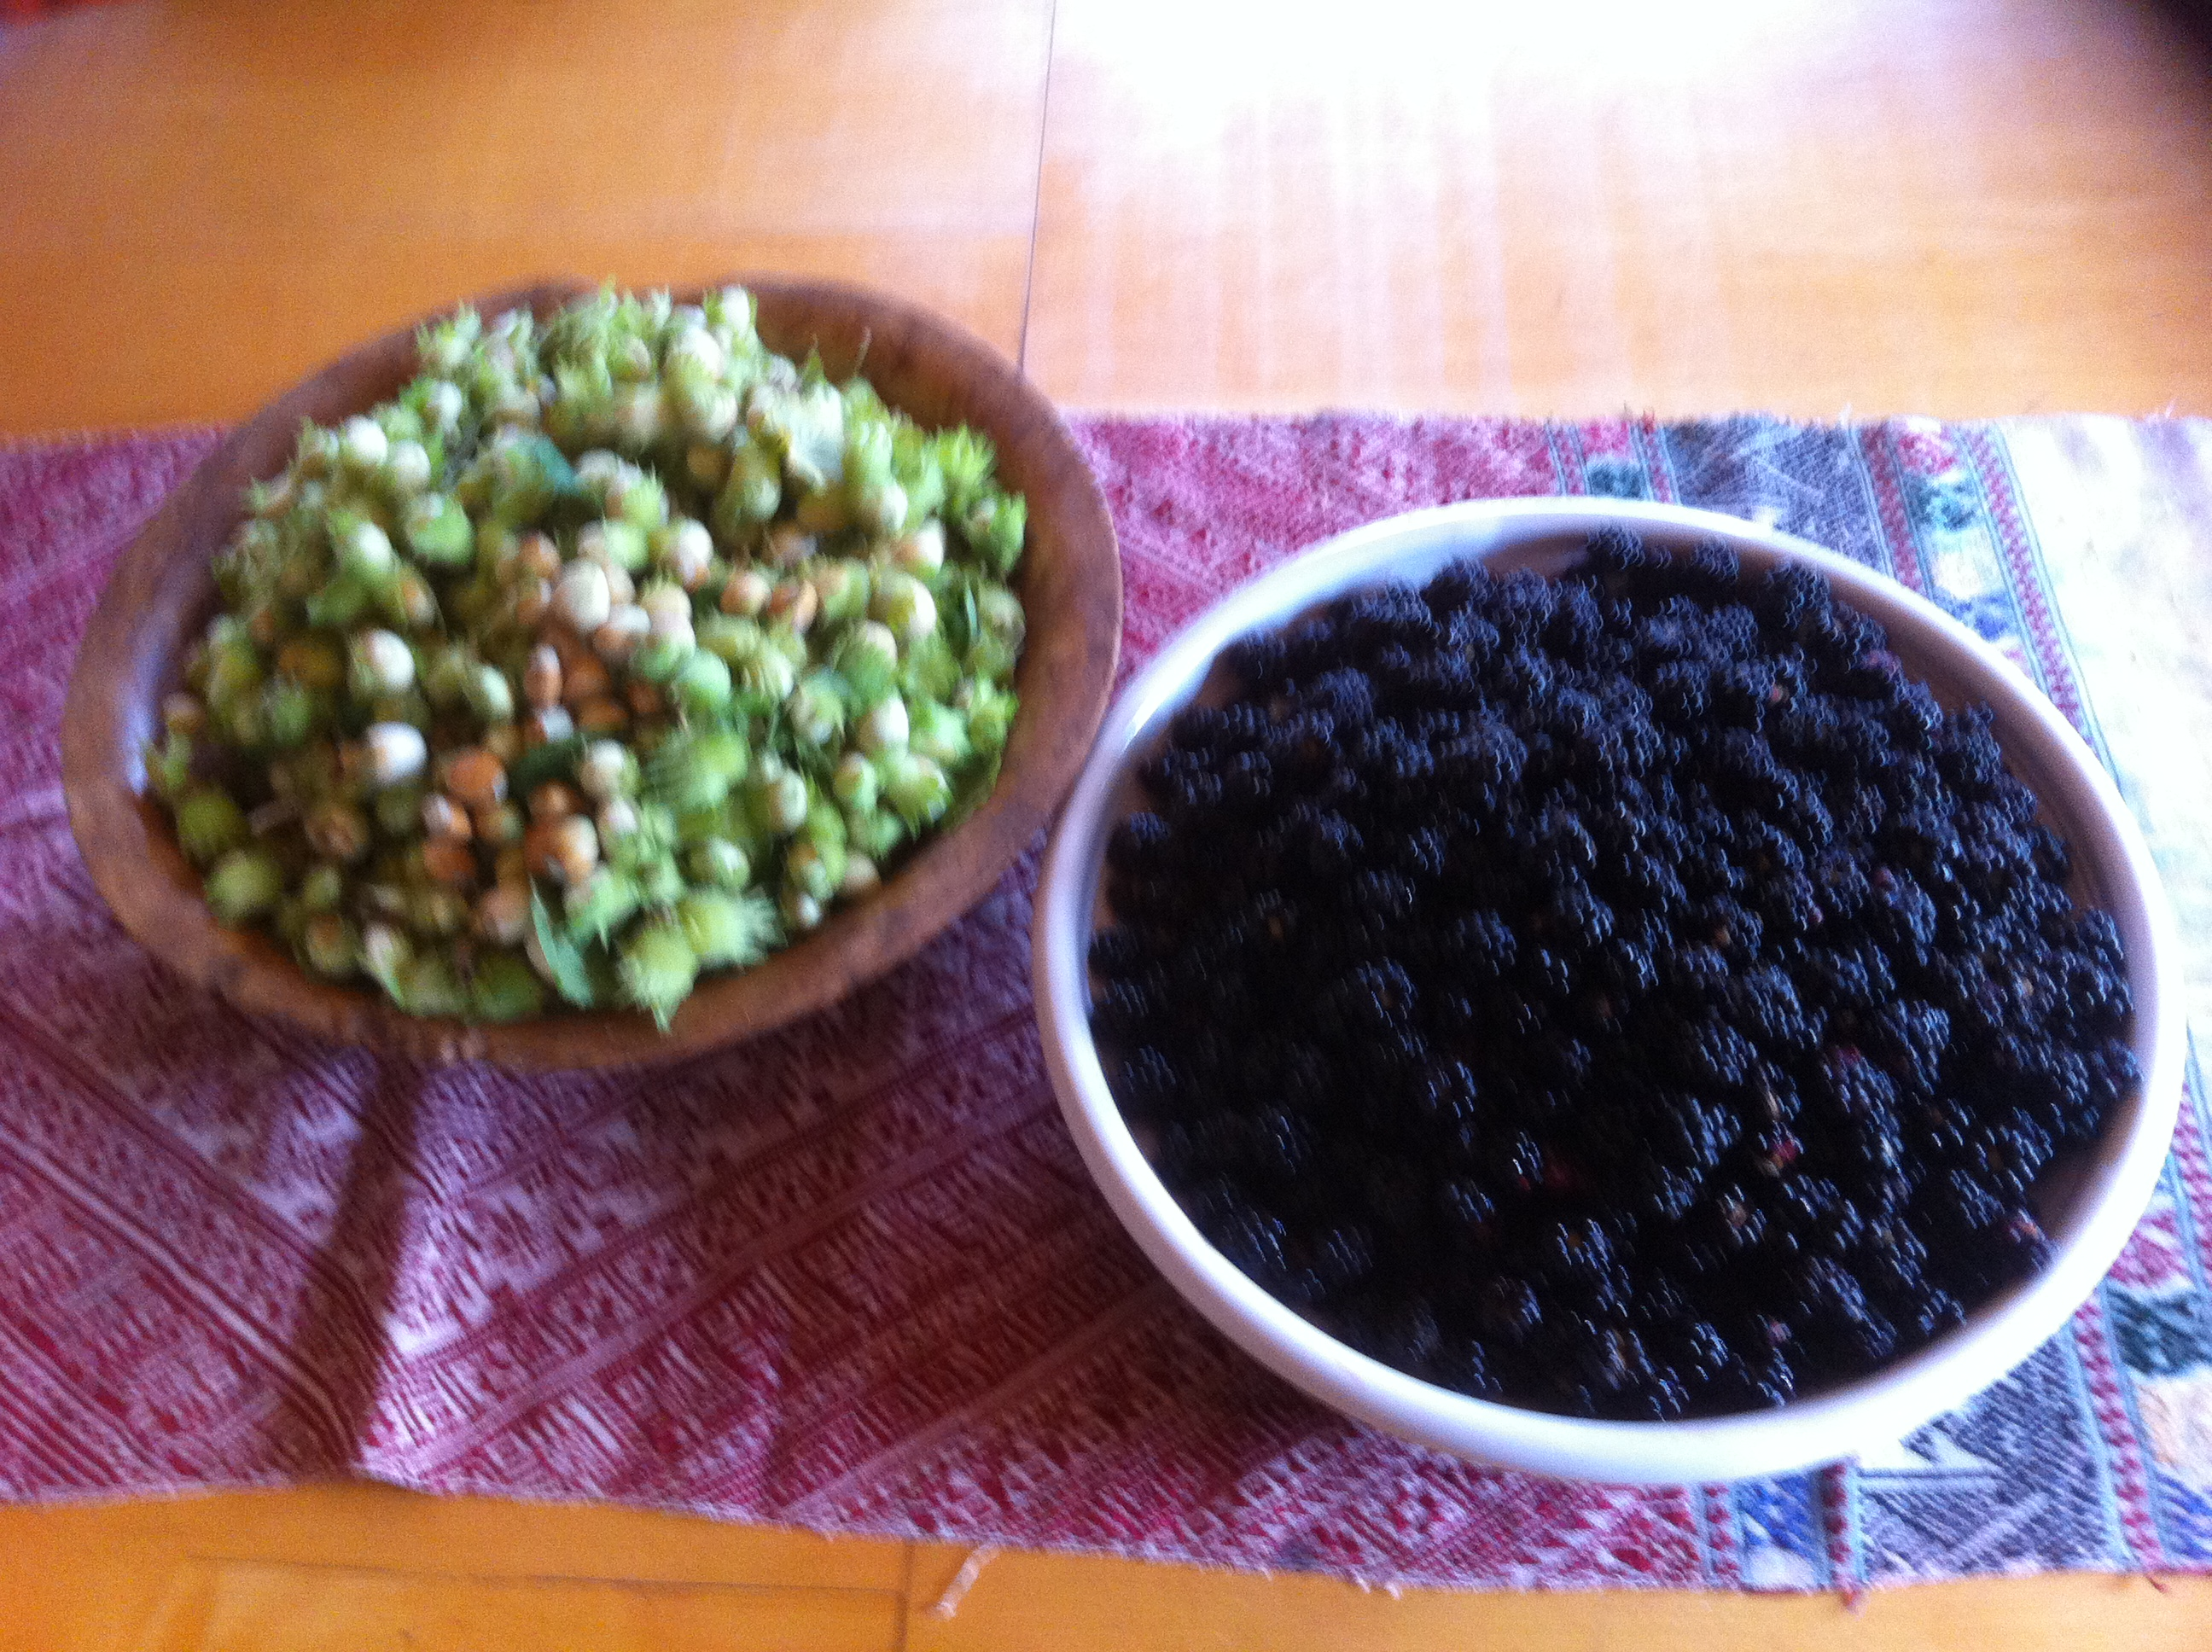 Hazelnuts and Blackberries gathered on late September stroll, thanks Eve Titi, Maja Martin for help and great day out